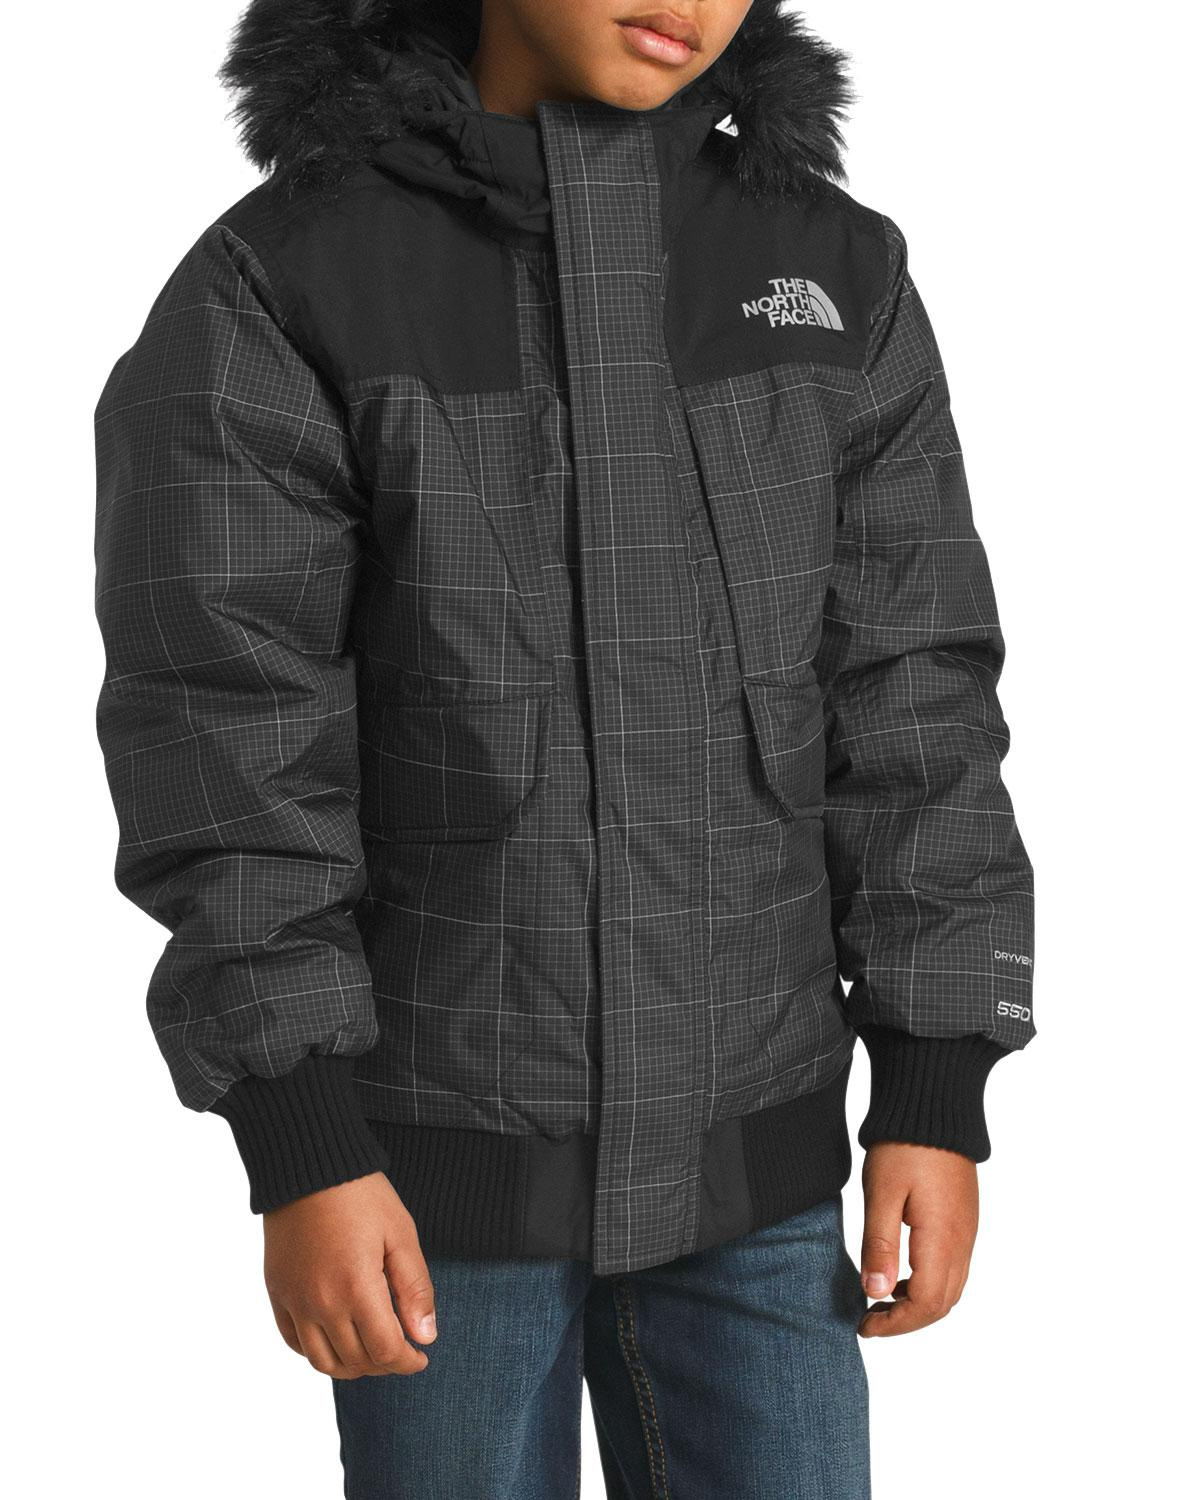 Lyst - The North Face Gotham Down Hooded Grid Jacket W  Faux-fur Trim in  Black for Men 3c5c38243